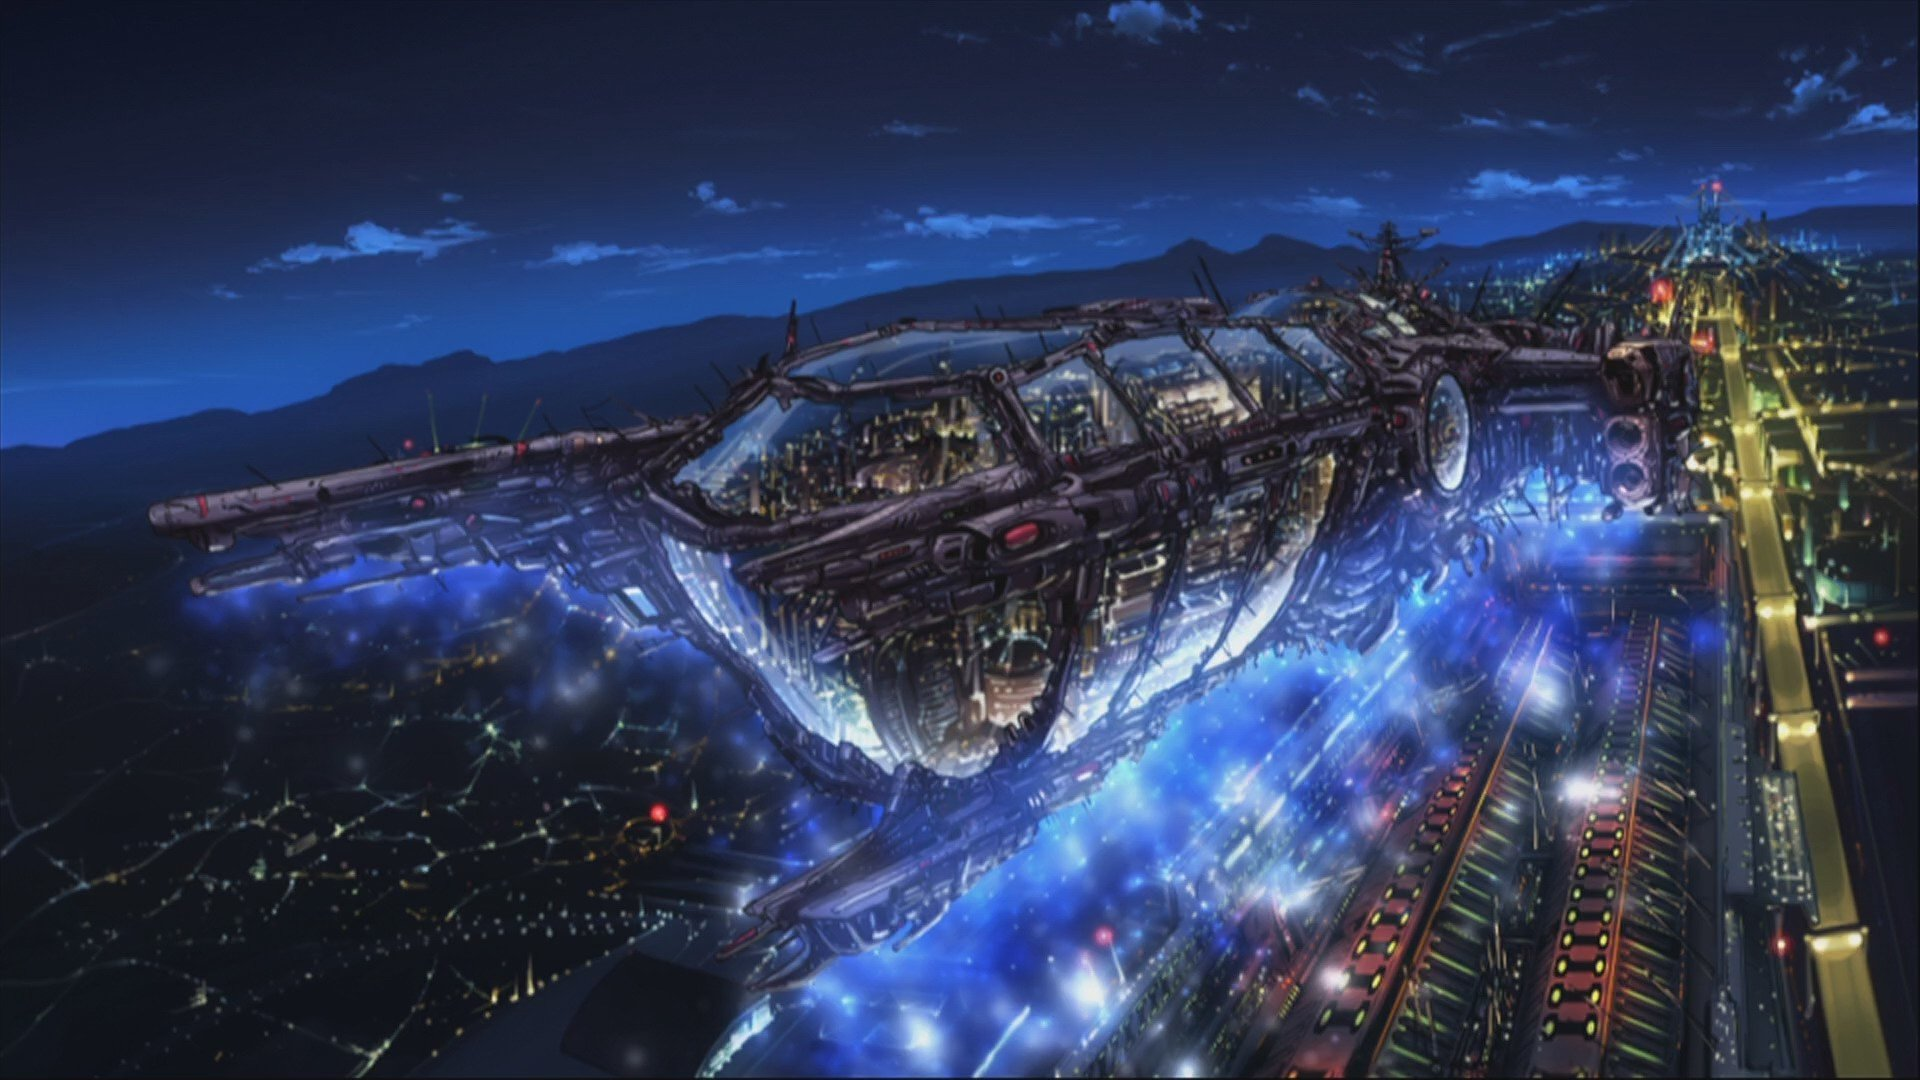 Macross full hd wallpaper and background image 1920x1080 - Anime full hd download ...